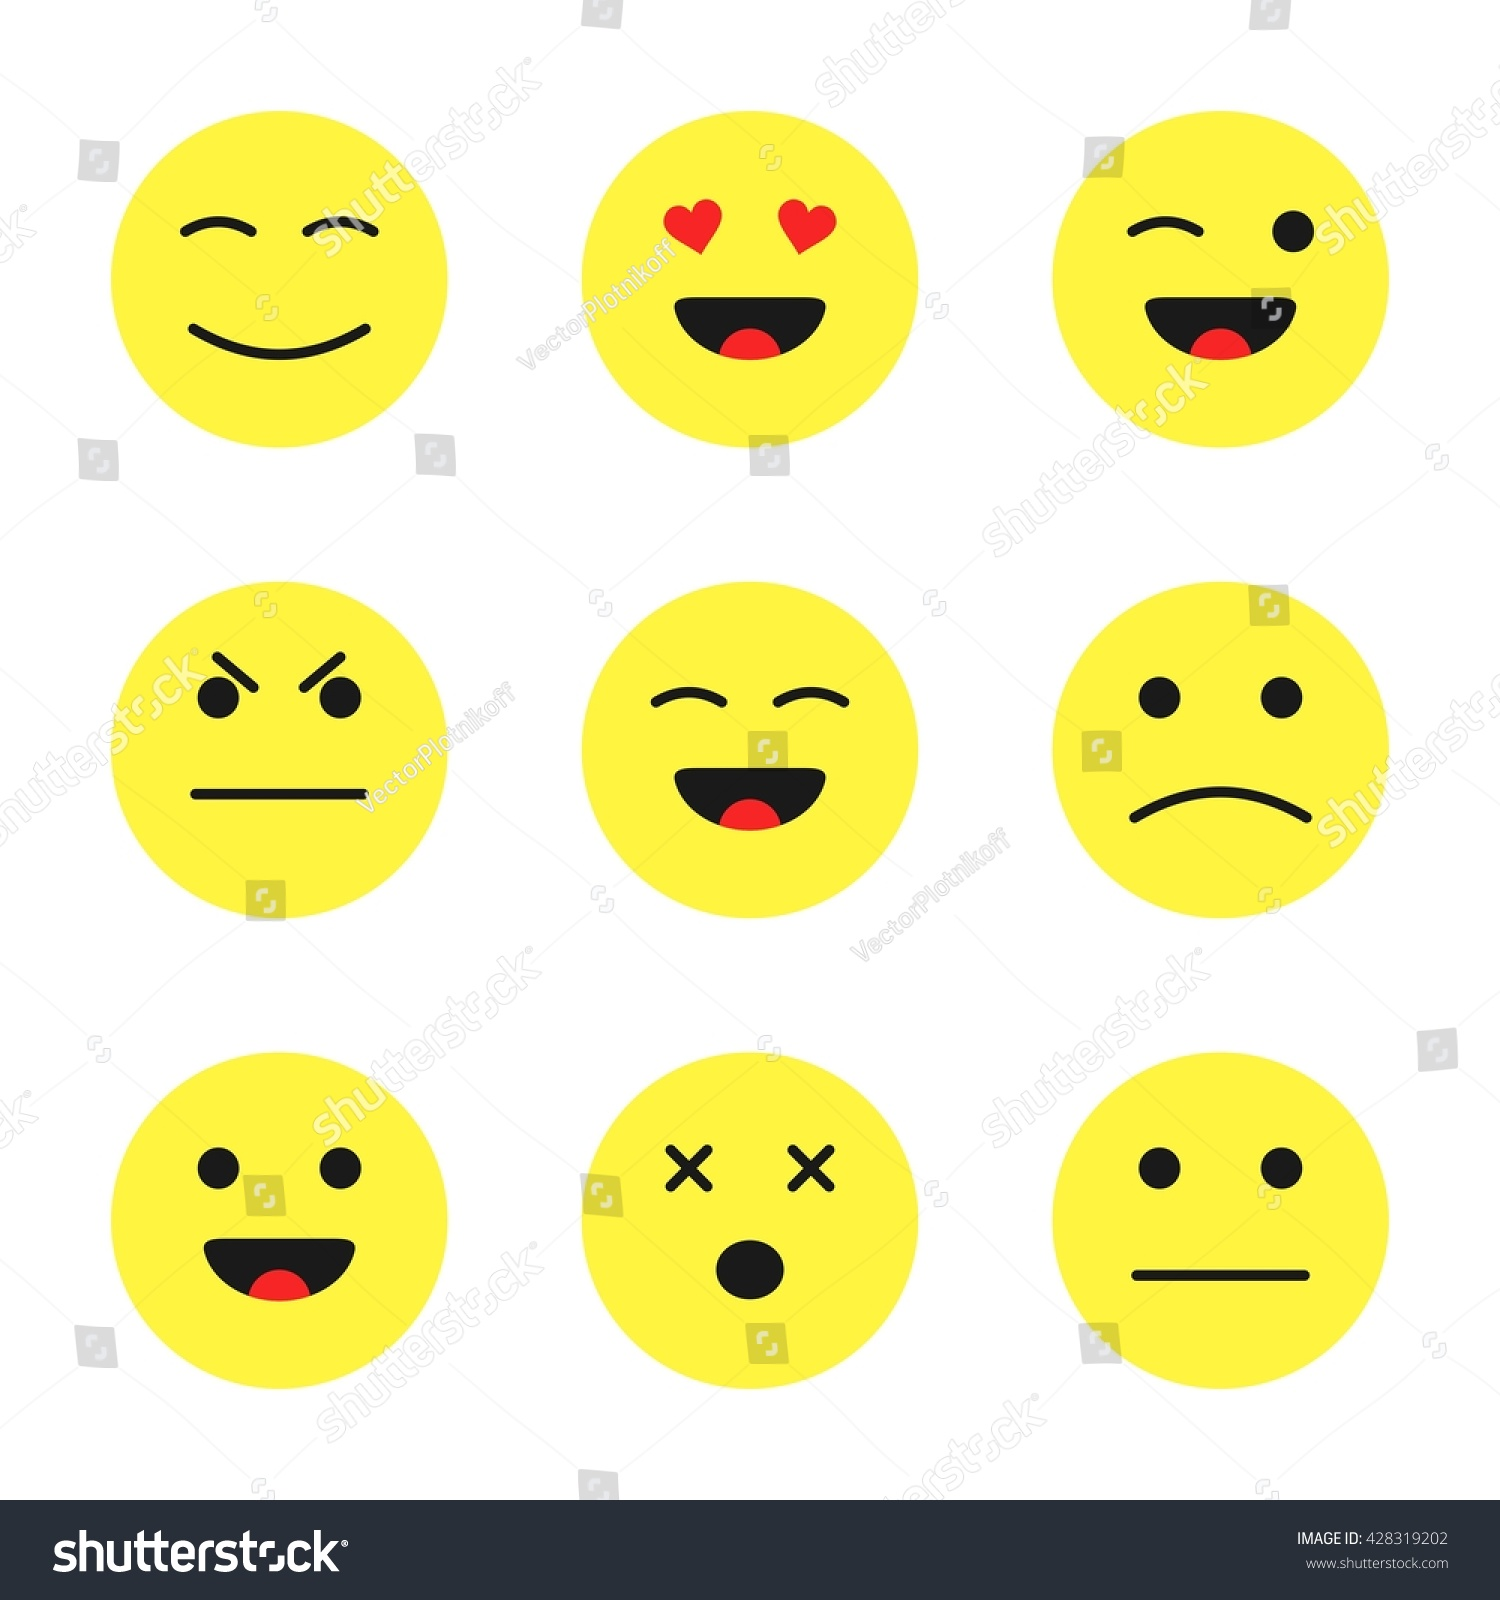 Set Cute Smiley Emoticons Cartoon Flat Stock Vector Royalty Free